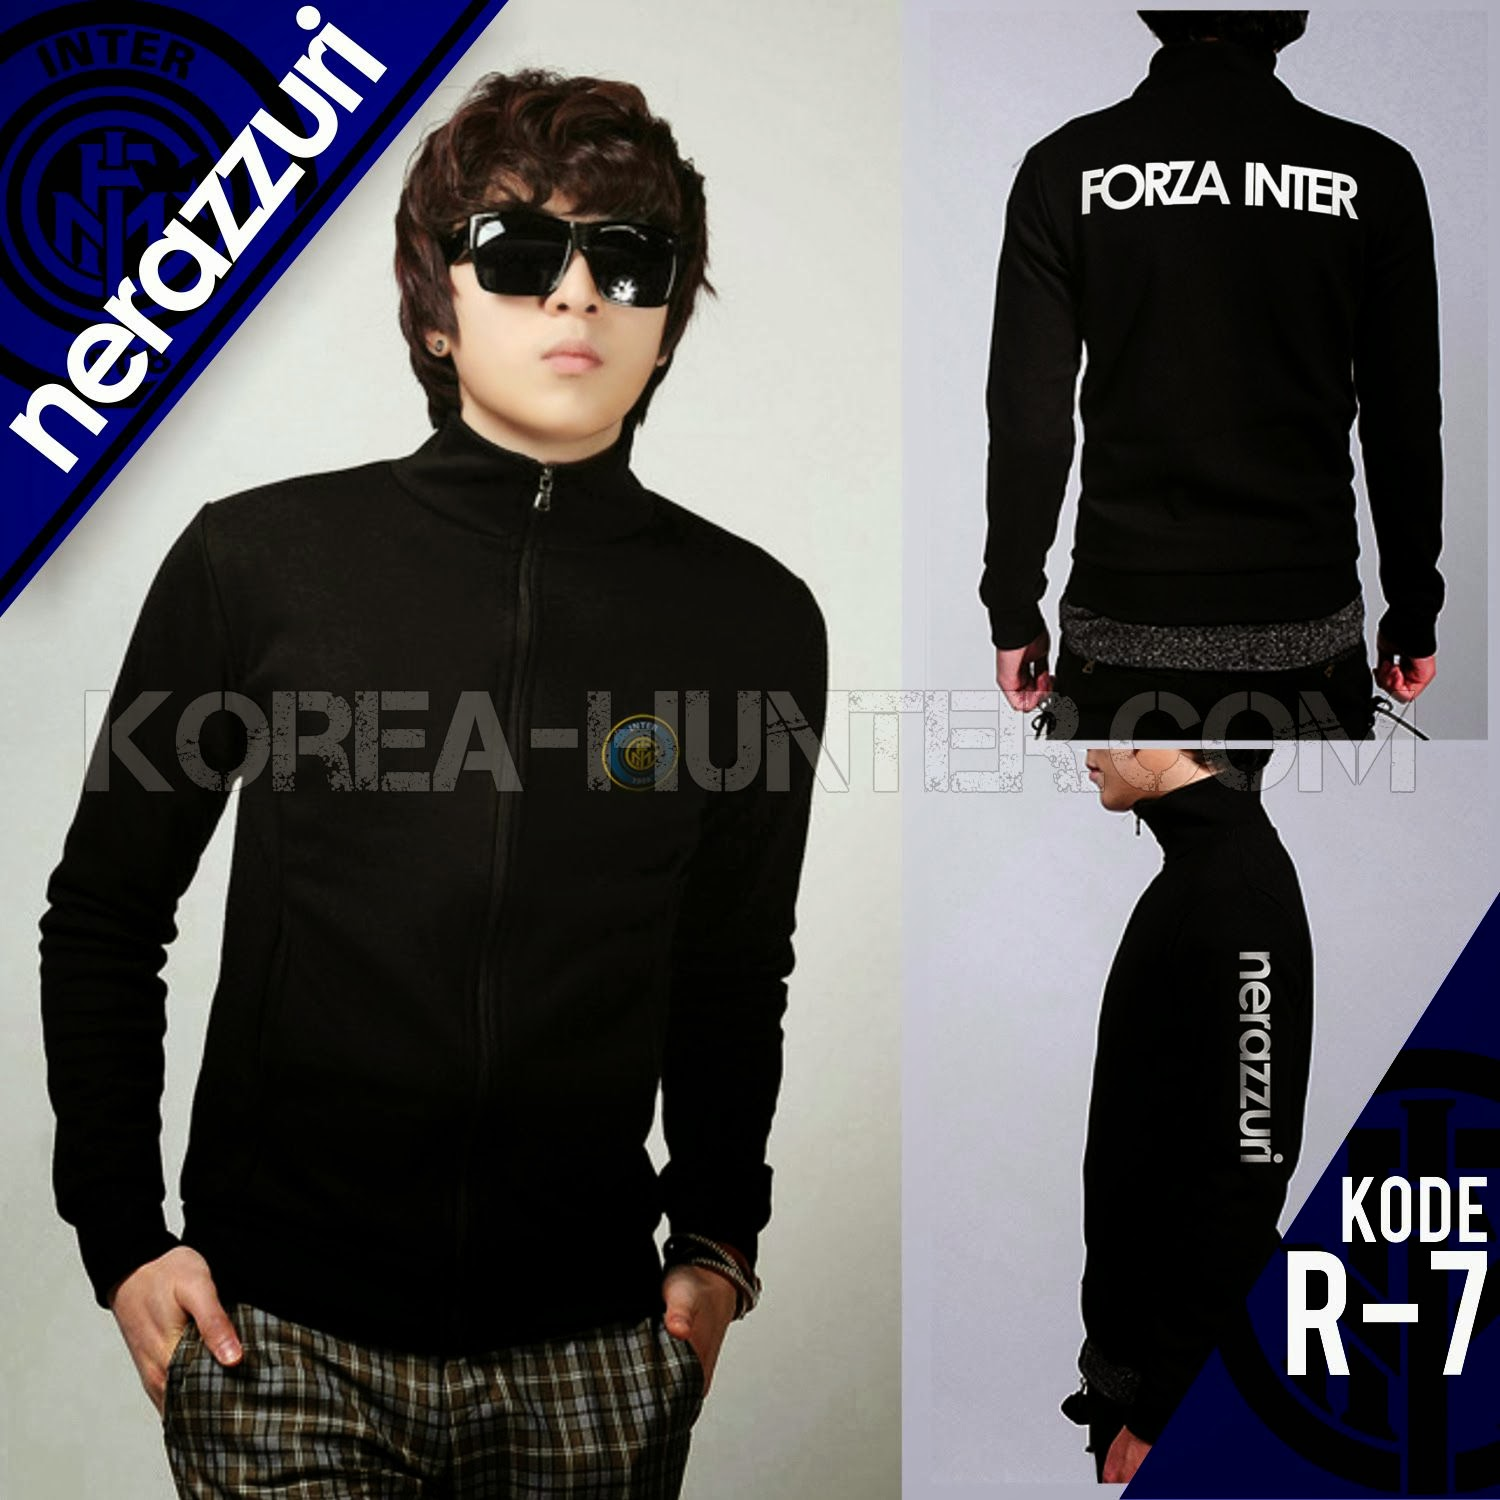 KOREA-HUNTER.com jual murah Soccer Club Jacket - Inter Milan | kaos crows zero tfoa | kemeja national geographic | tas denim korean style blazer